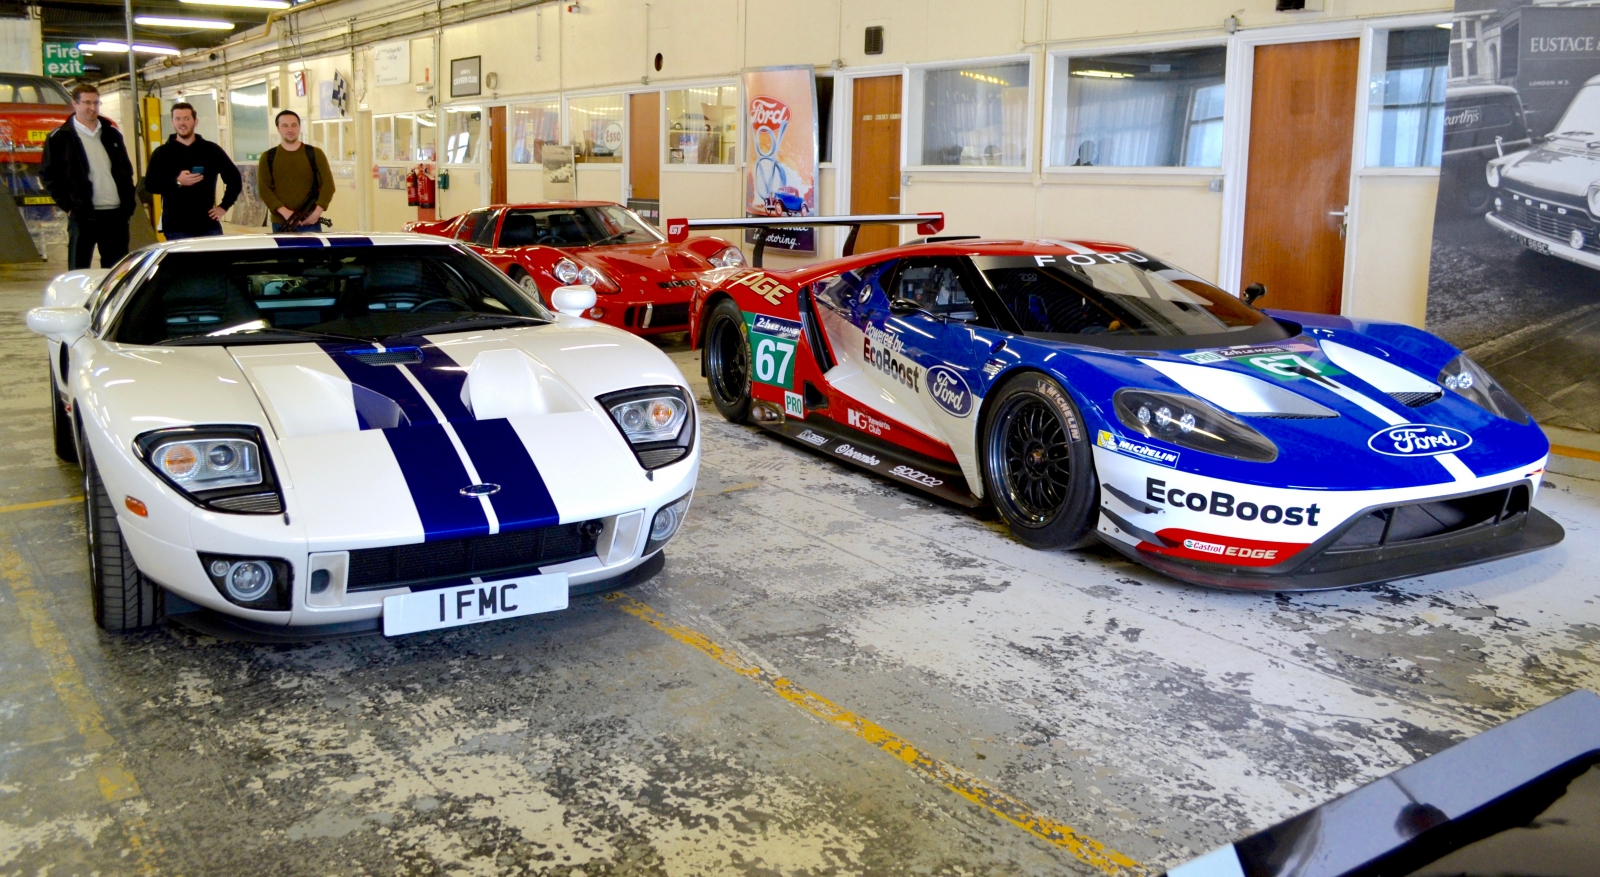 Le Mans  Ford Gt Photoshoot New Racer Meets Its Gt And Gt Predecessors Ahead Of  Hour Race